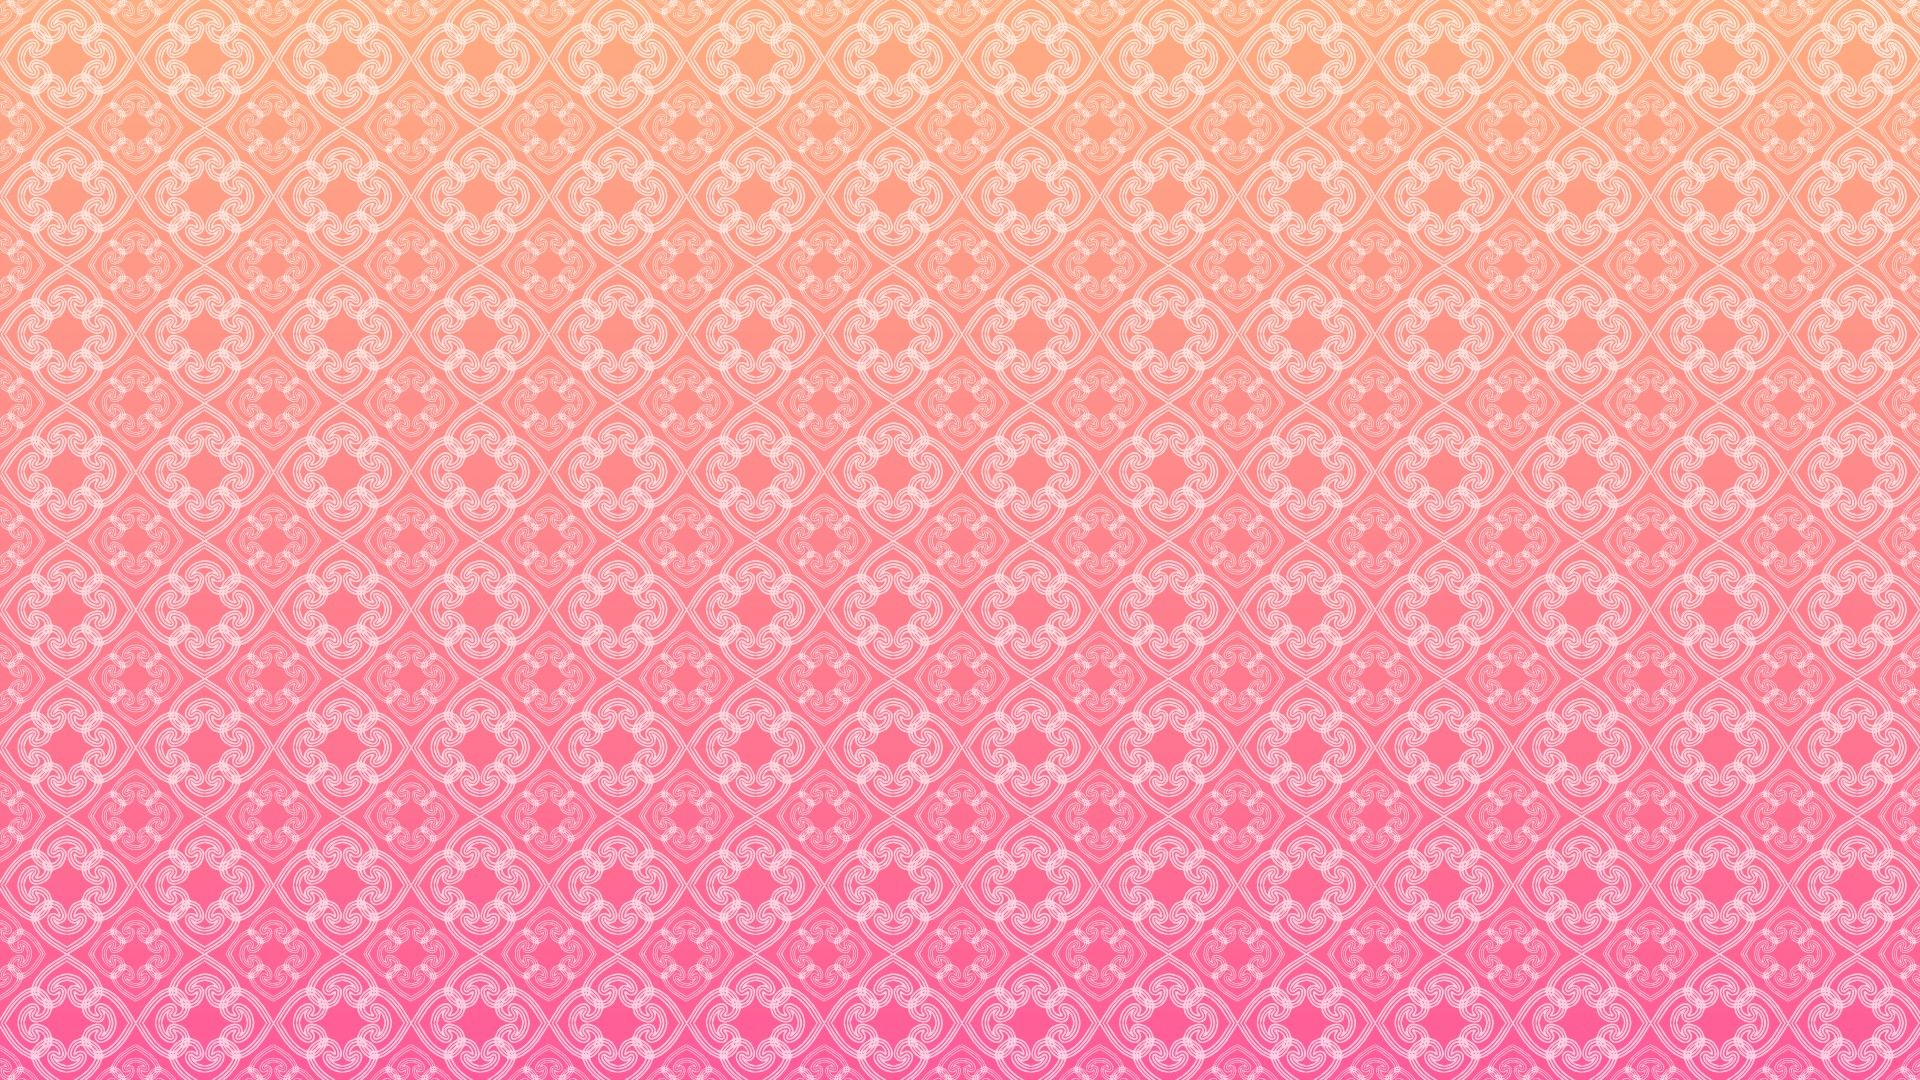 pink pattern background tumblr - Google Search | Places to Visit ... for Background Pattern Tumblr Orange  83fiz